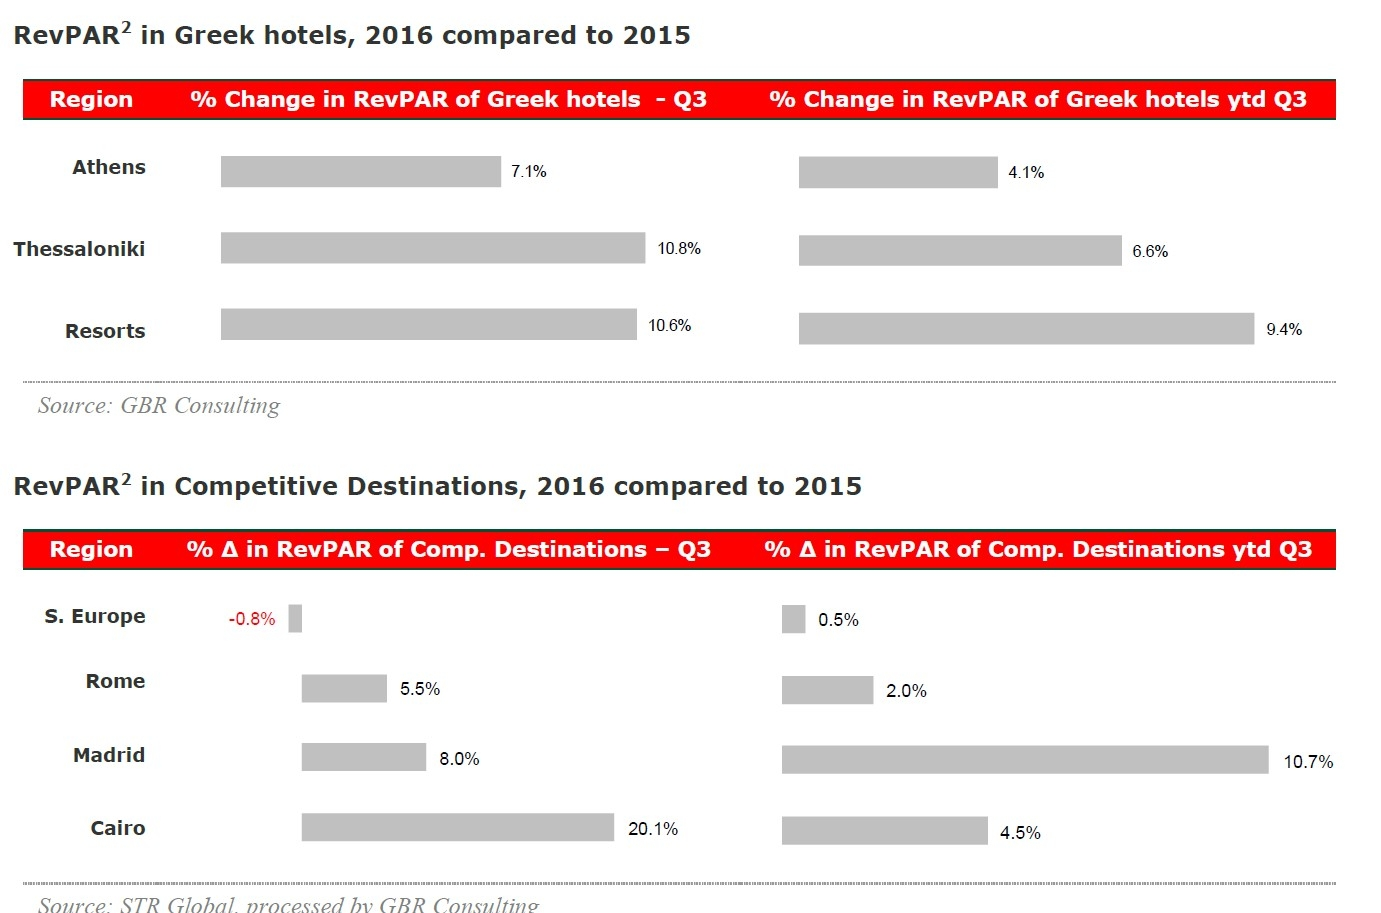 gbr grate results for the greek hotels at q3 2016 hotel receipts from greece